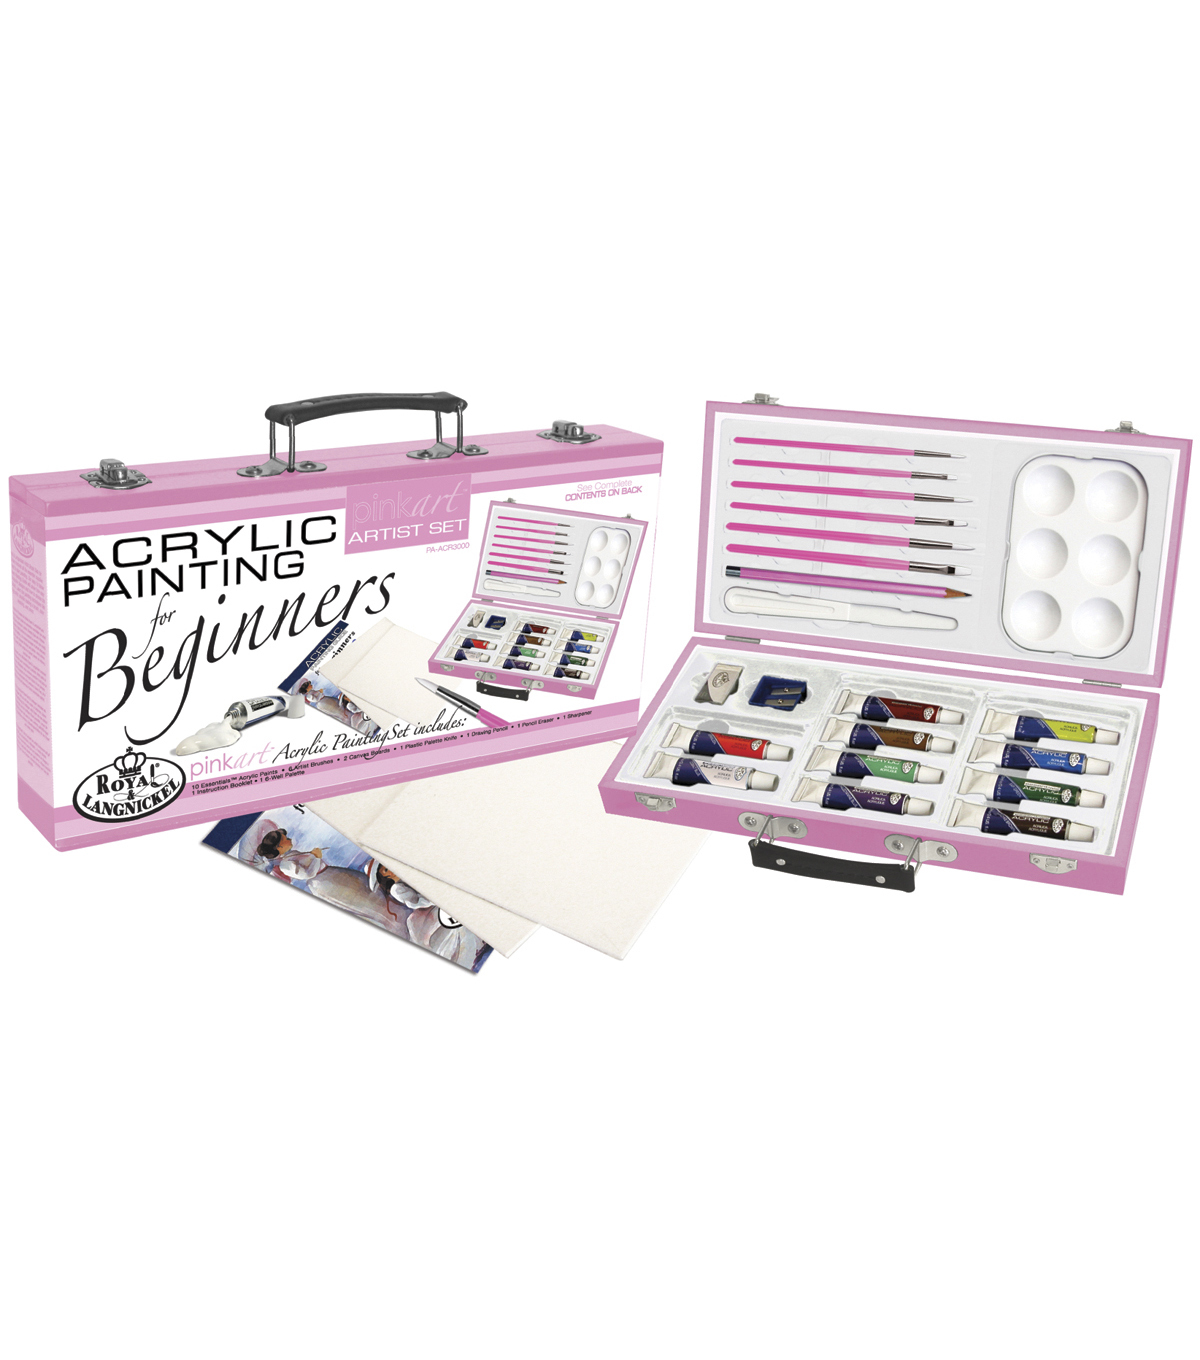 Royal Brush Pink Art For Beginners Artist Set-Acrylic Painting